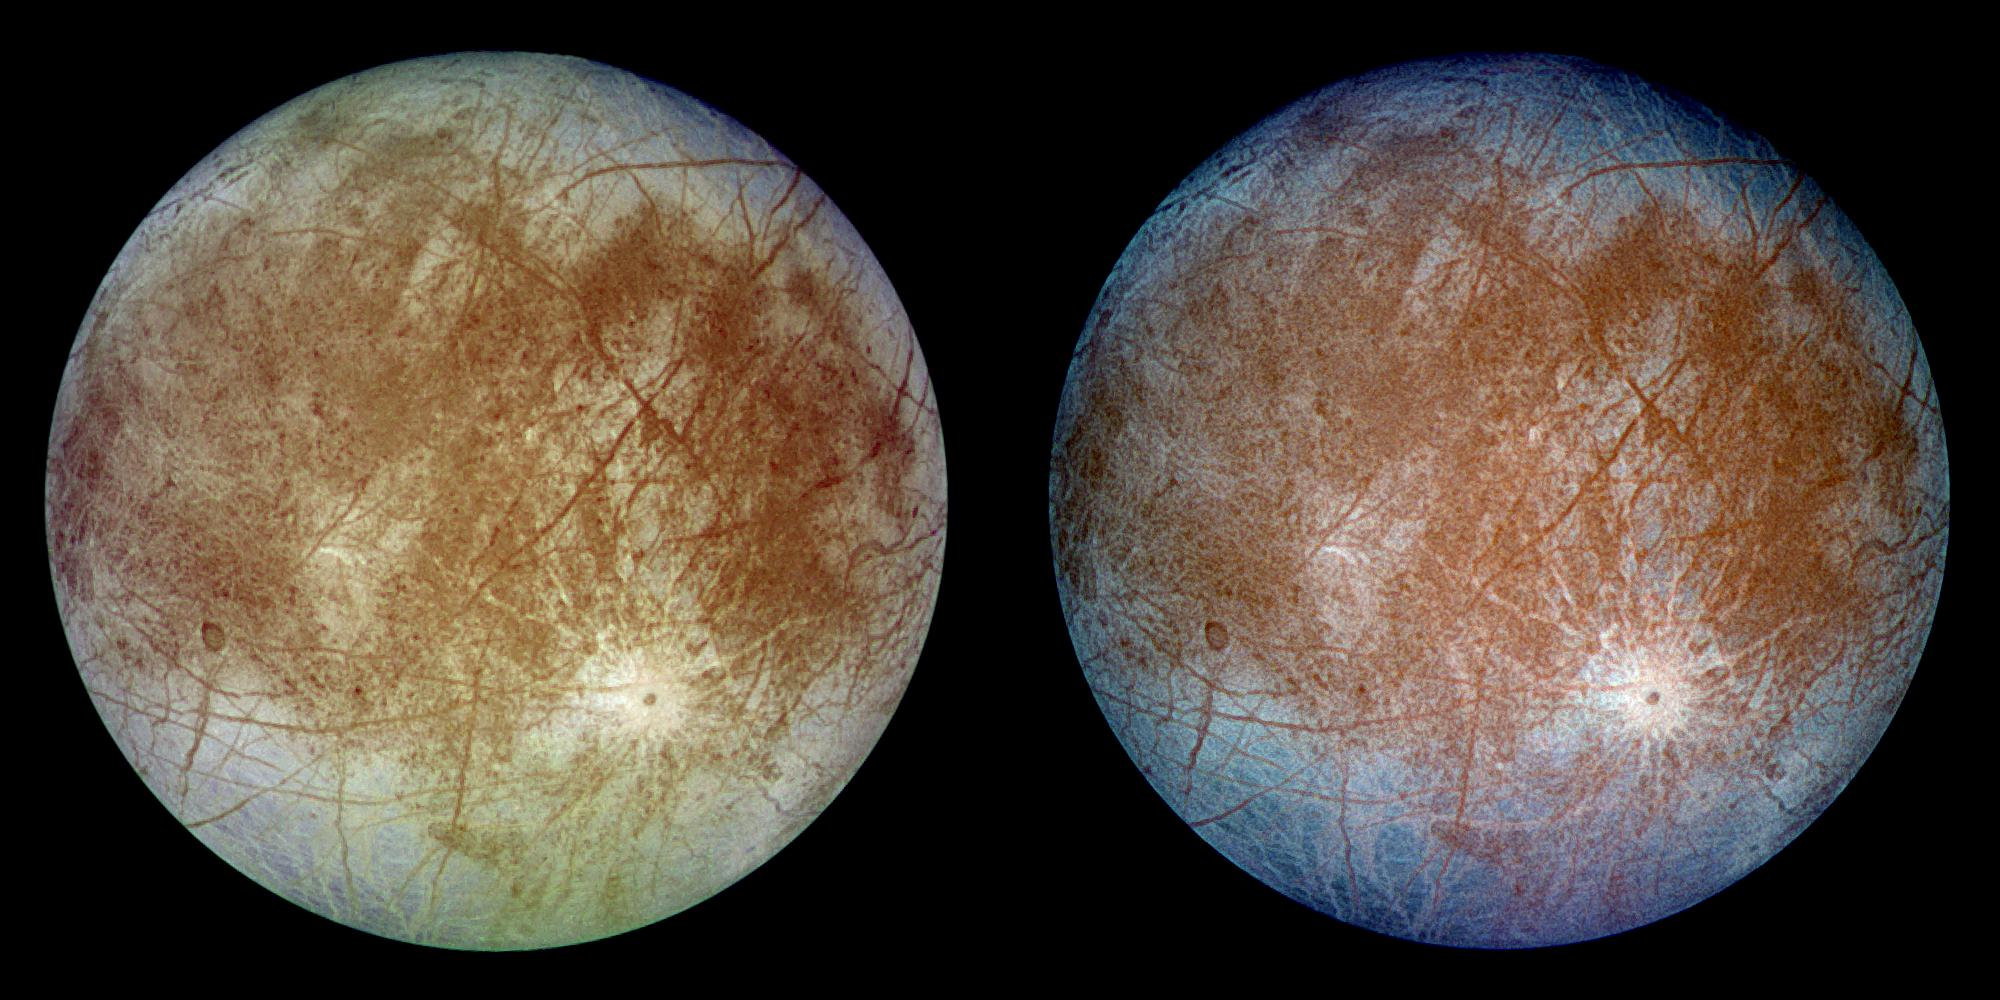 This image shows two views of the trailing hemisphere of Jupiter's ice-covered satellite, Europa. The left image shows the approximate natural color appearance of Europa. The image on the right is a false-color composite version combining violet, green and infrared images to enhance color differences in the predominantly water-ice crust of Europa. NASA's Galileo spacecraft captured the imagery in 1996. Credit: NASA/JPL/DLR